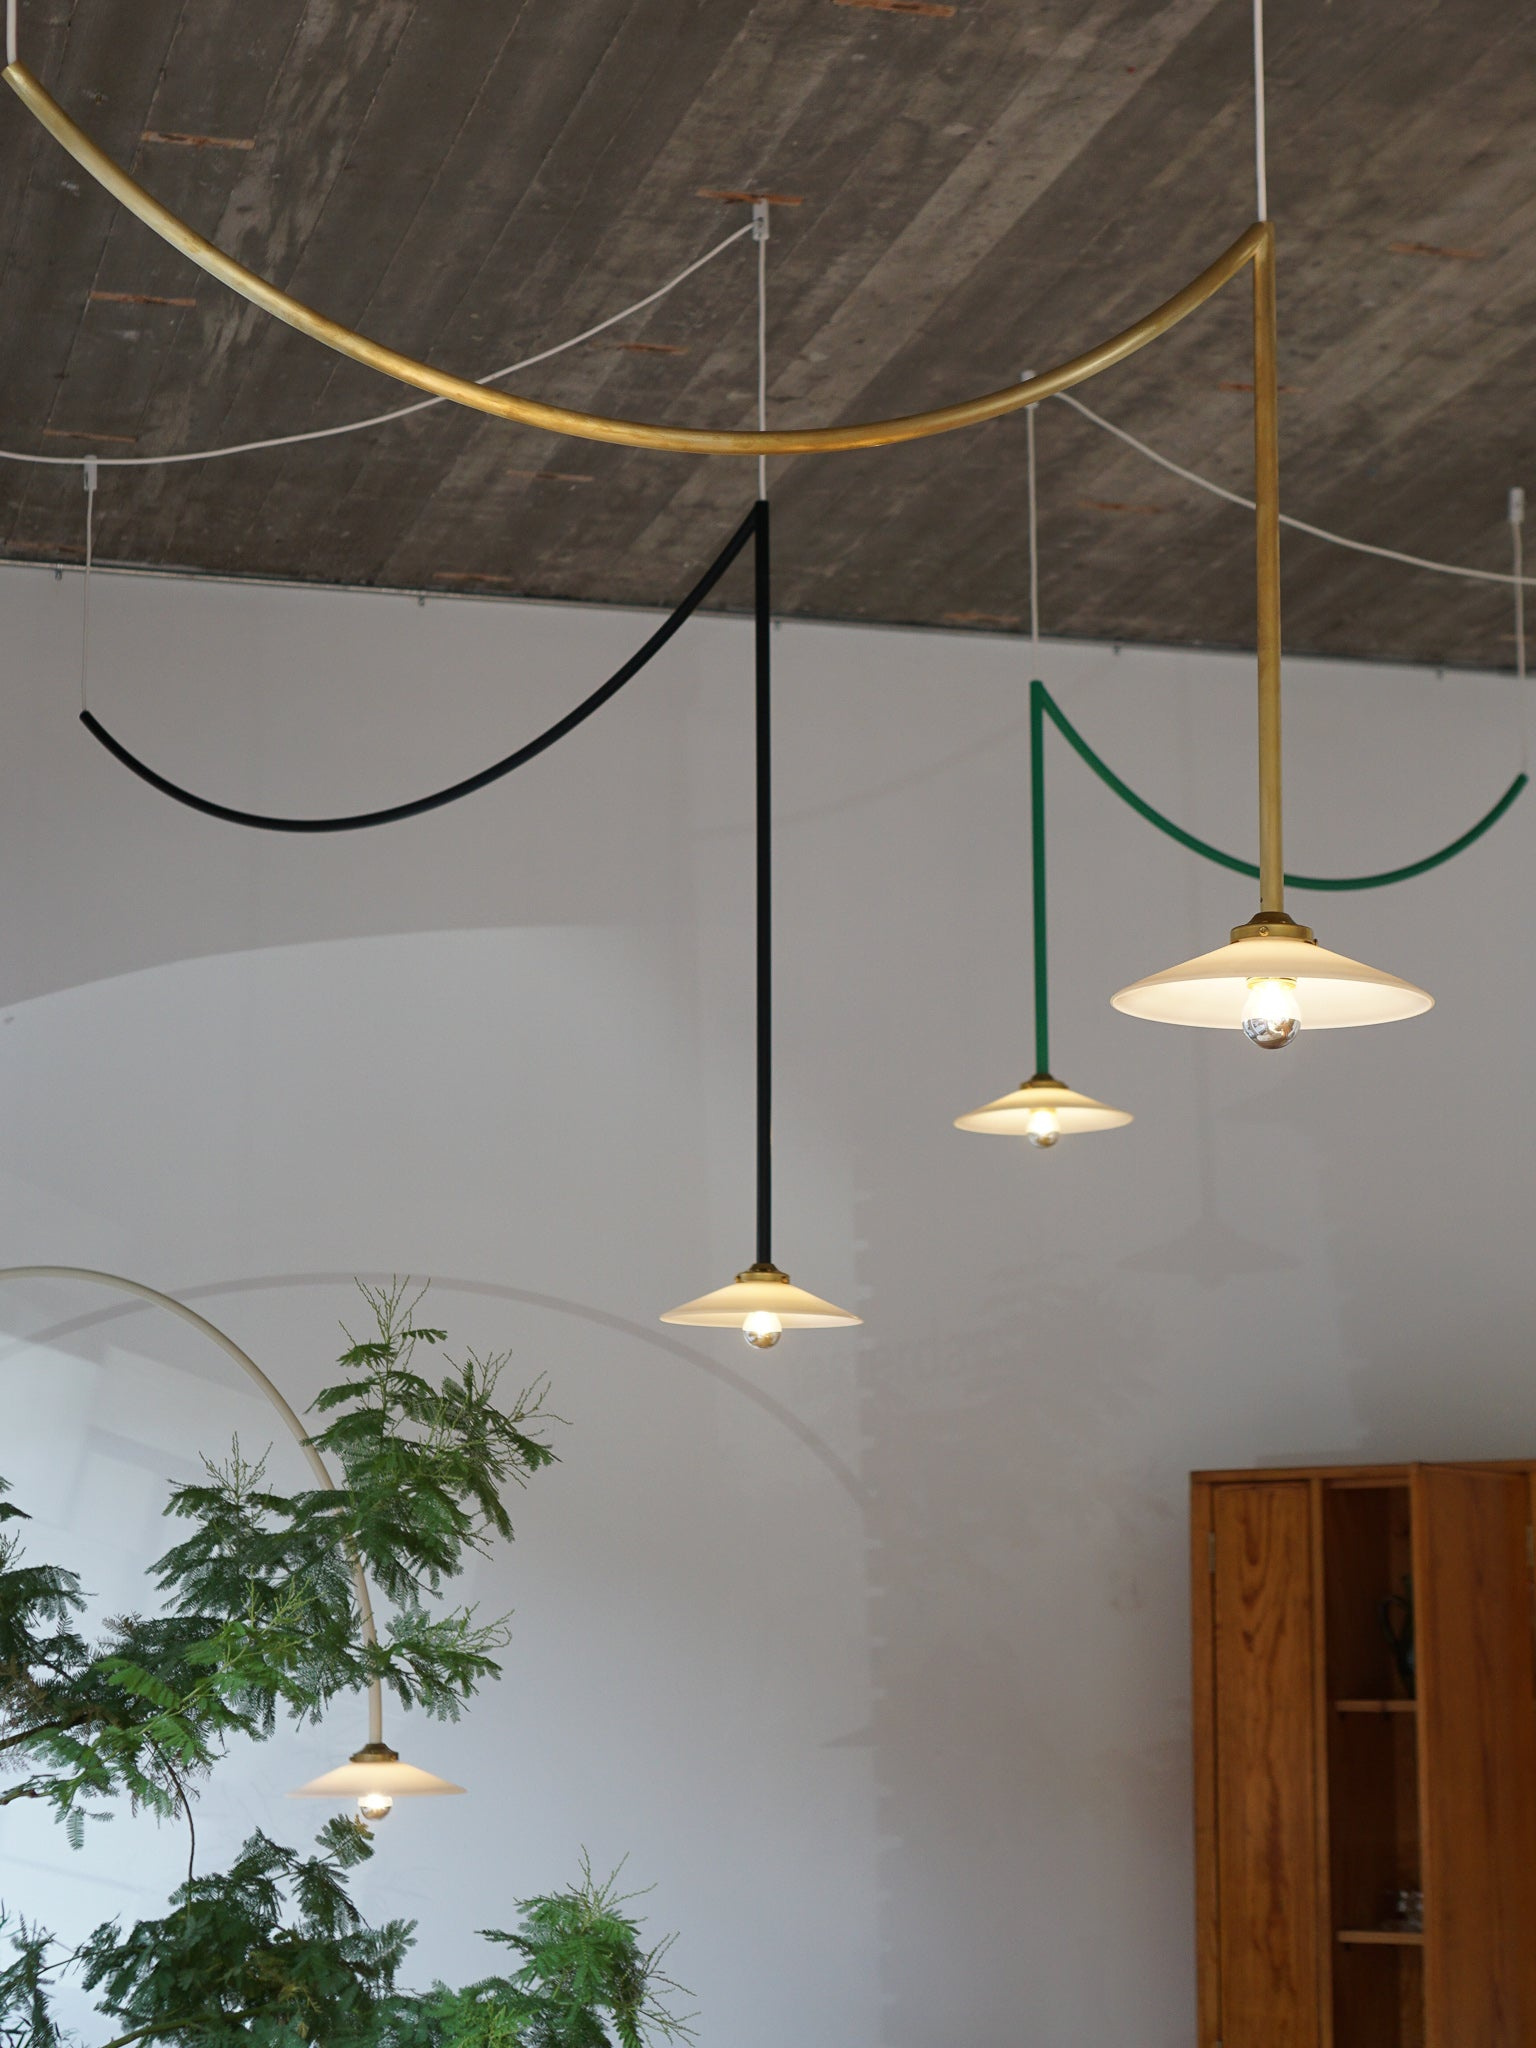 Valerie Objects Ceiling Lamp #4 & #5 by Muller van Severen